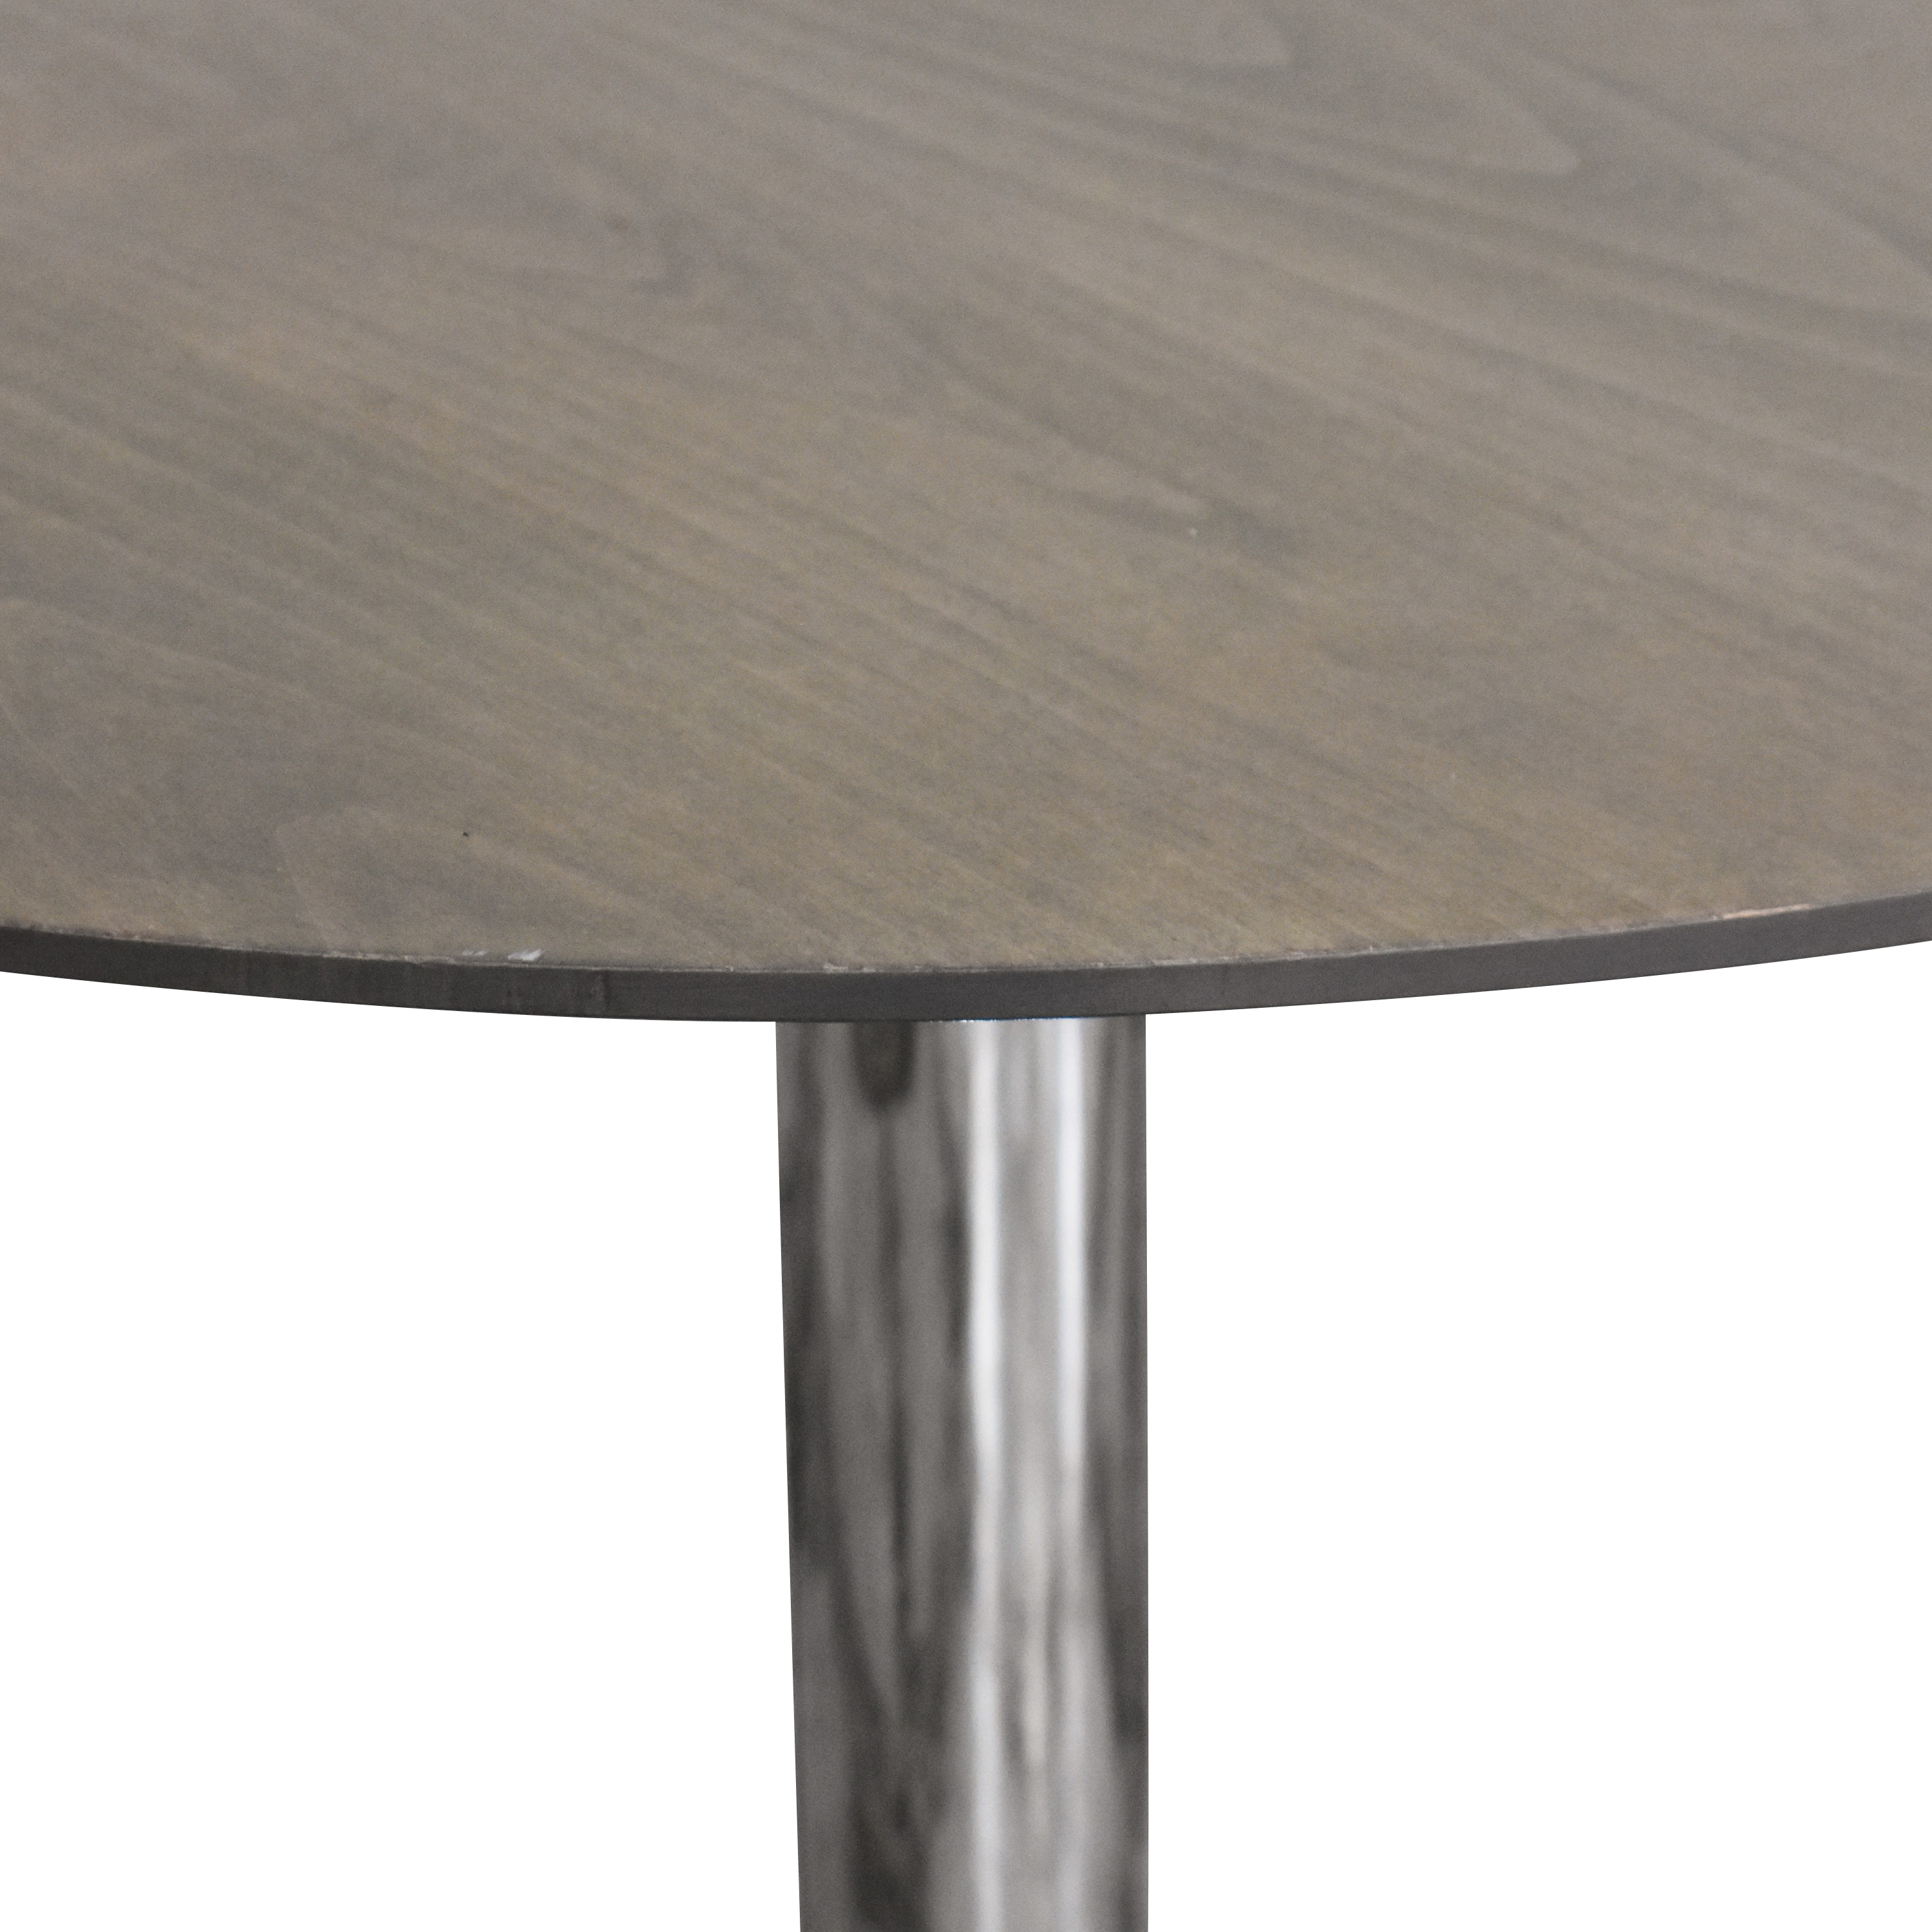 Room & Board Room & Board Aria Round Dining Table Tables